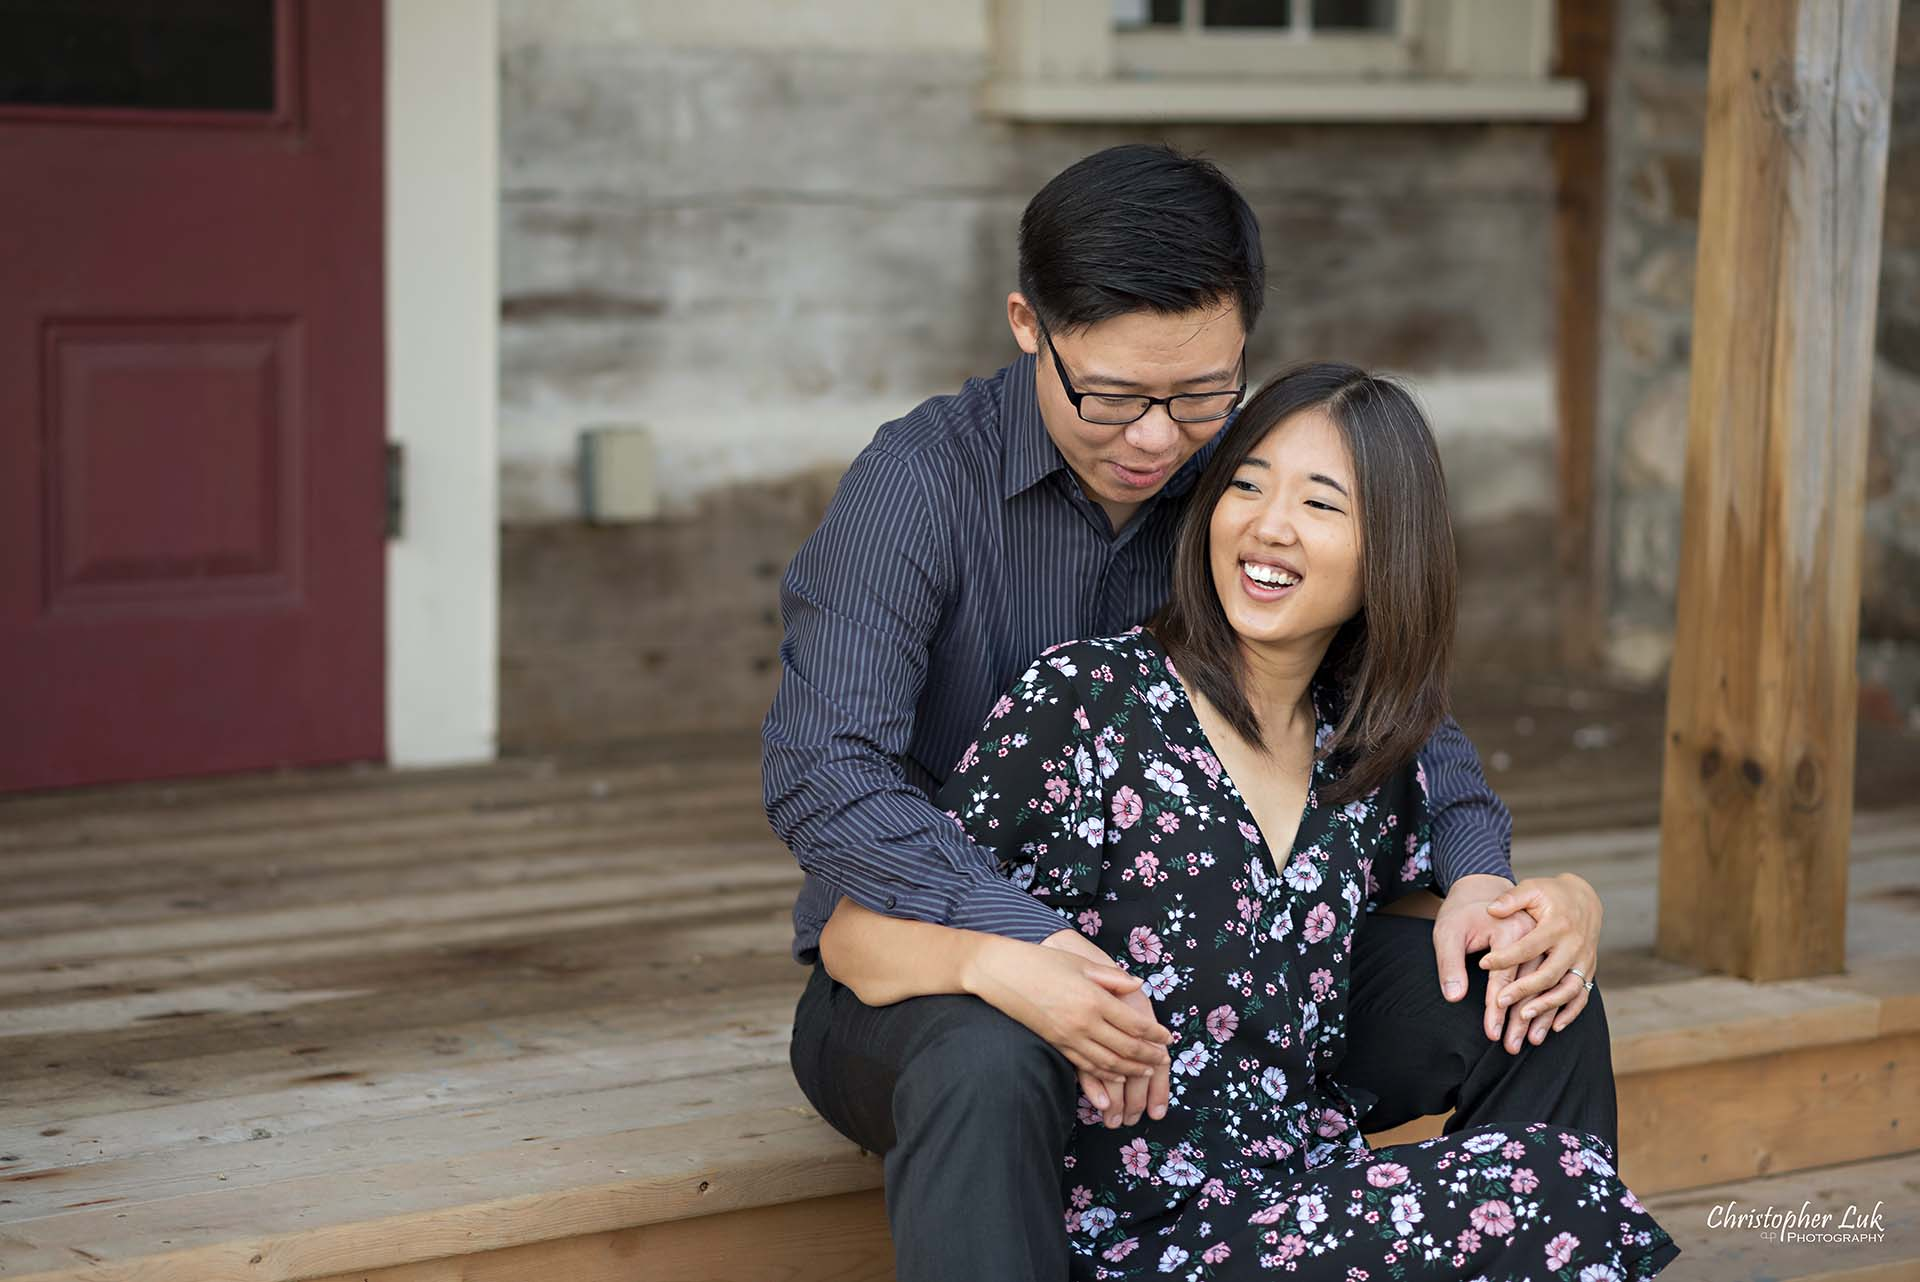 Christopher Luk Toronto Wedding Photographer - Richmond Hill Markham York Region Conservation Area Engagement PreWedding Chinese Korean - Natural Candid Photojournalistic Bride Groom Historic Estate Log Cabin House Steps Staircase Smile Landscape